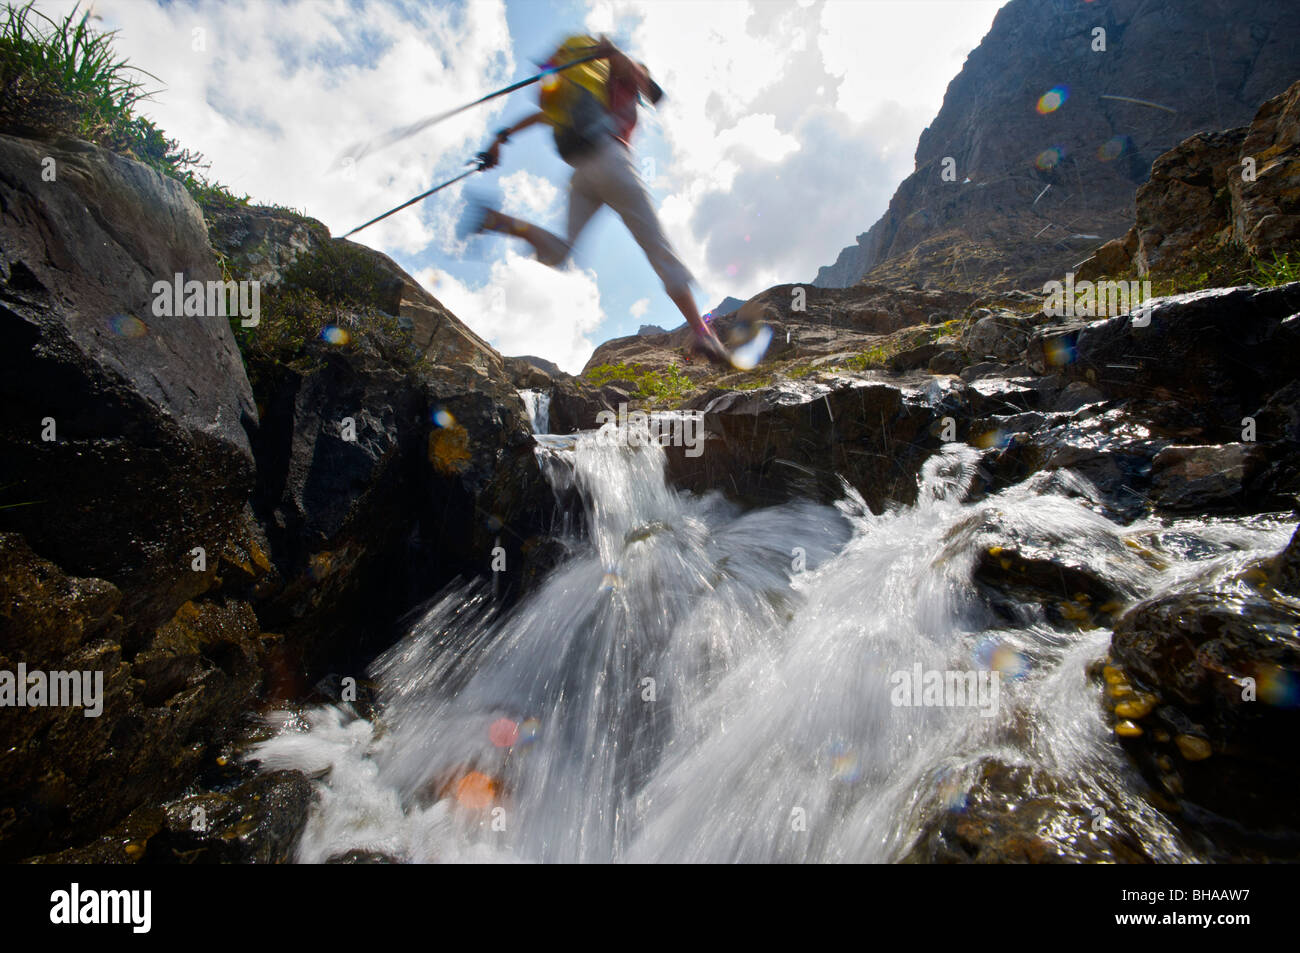 Hiker jumps over a creek on the Williwaw Lakes Trail in Chugach State Park, near Anchorage, Southcentral Alaska, - Stock Image